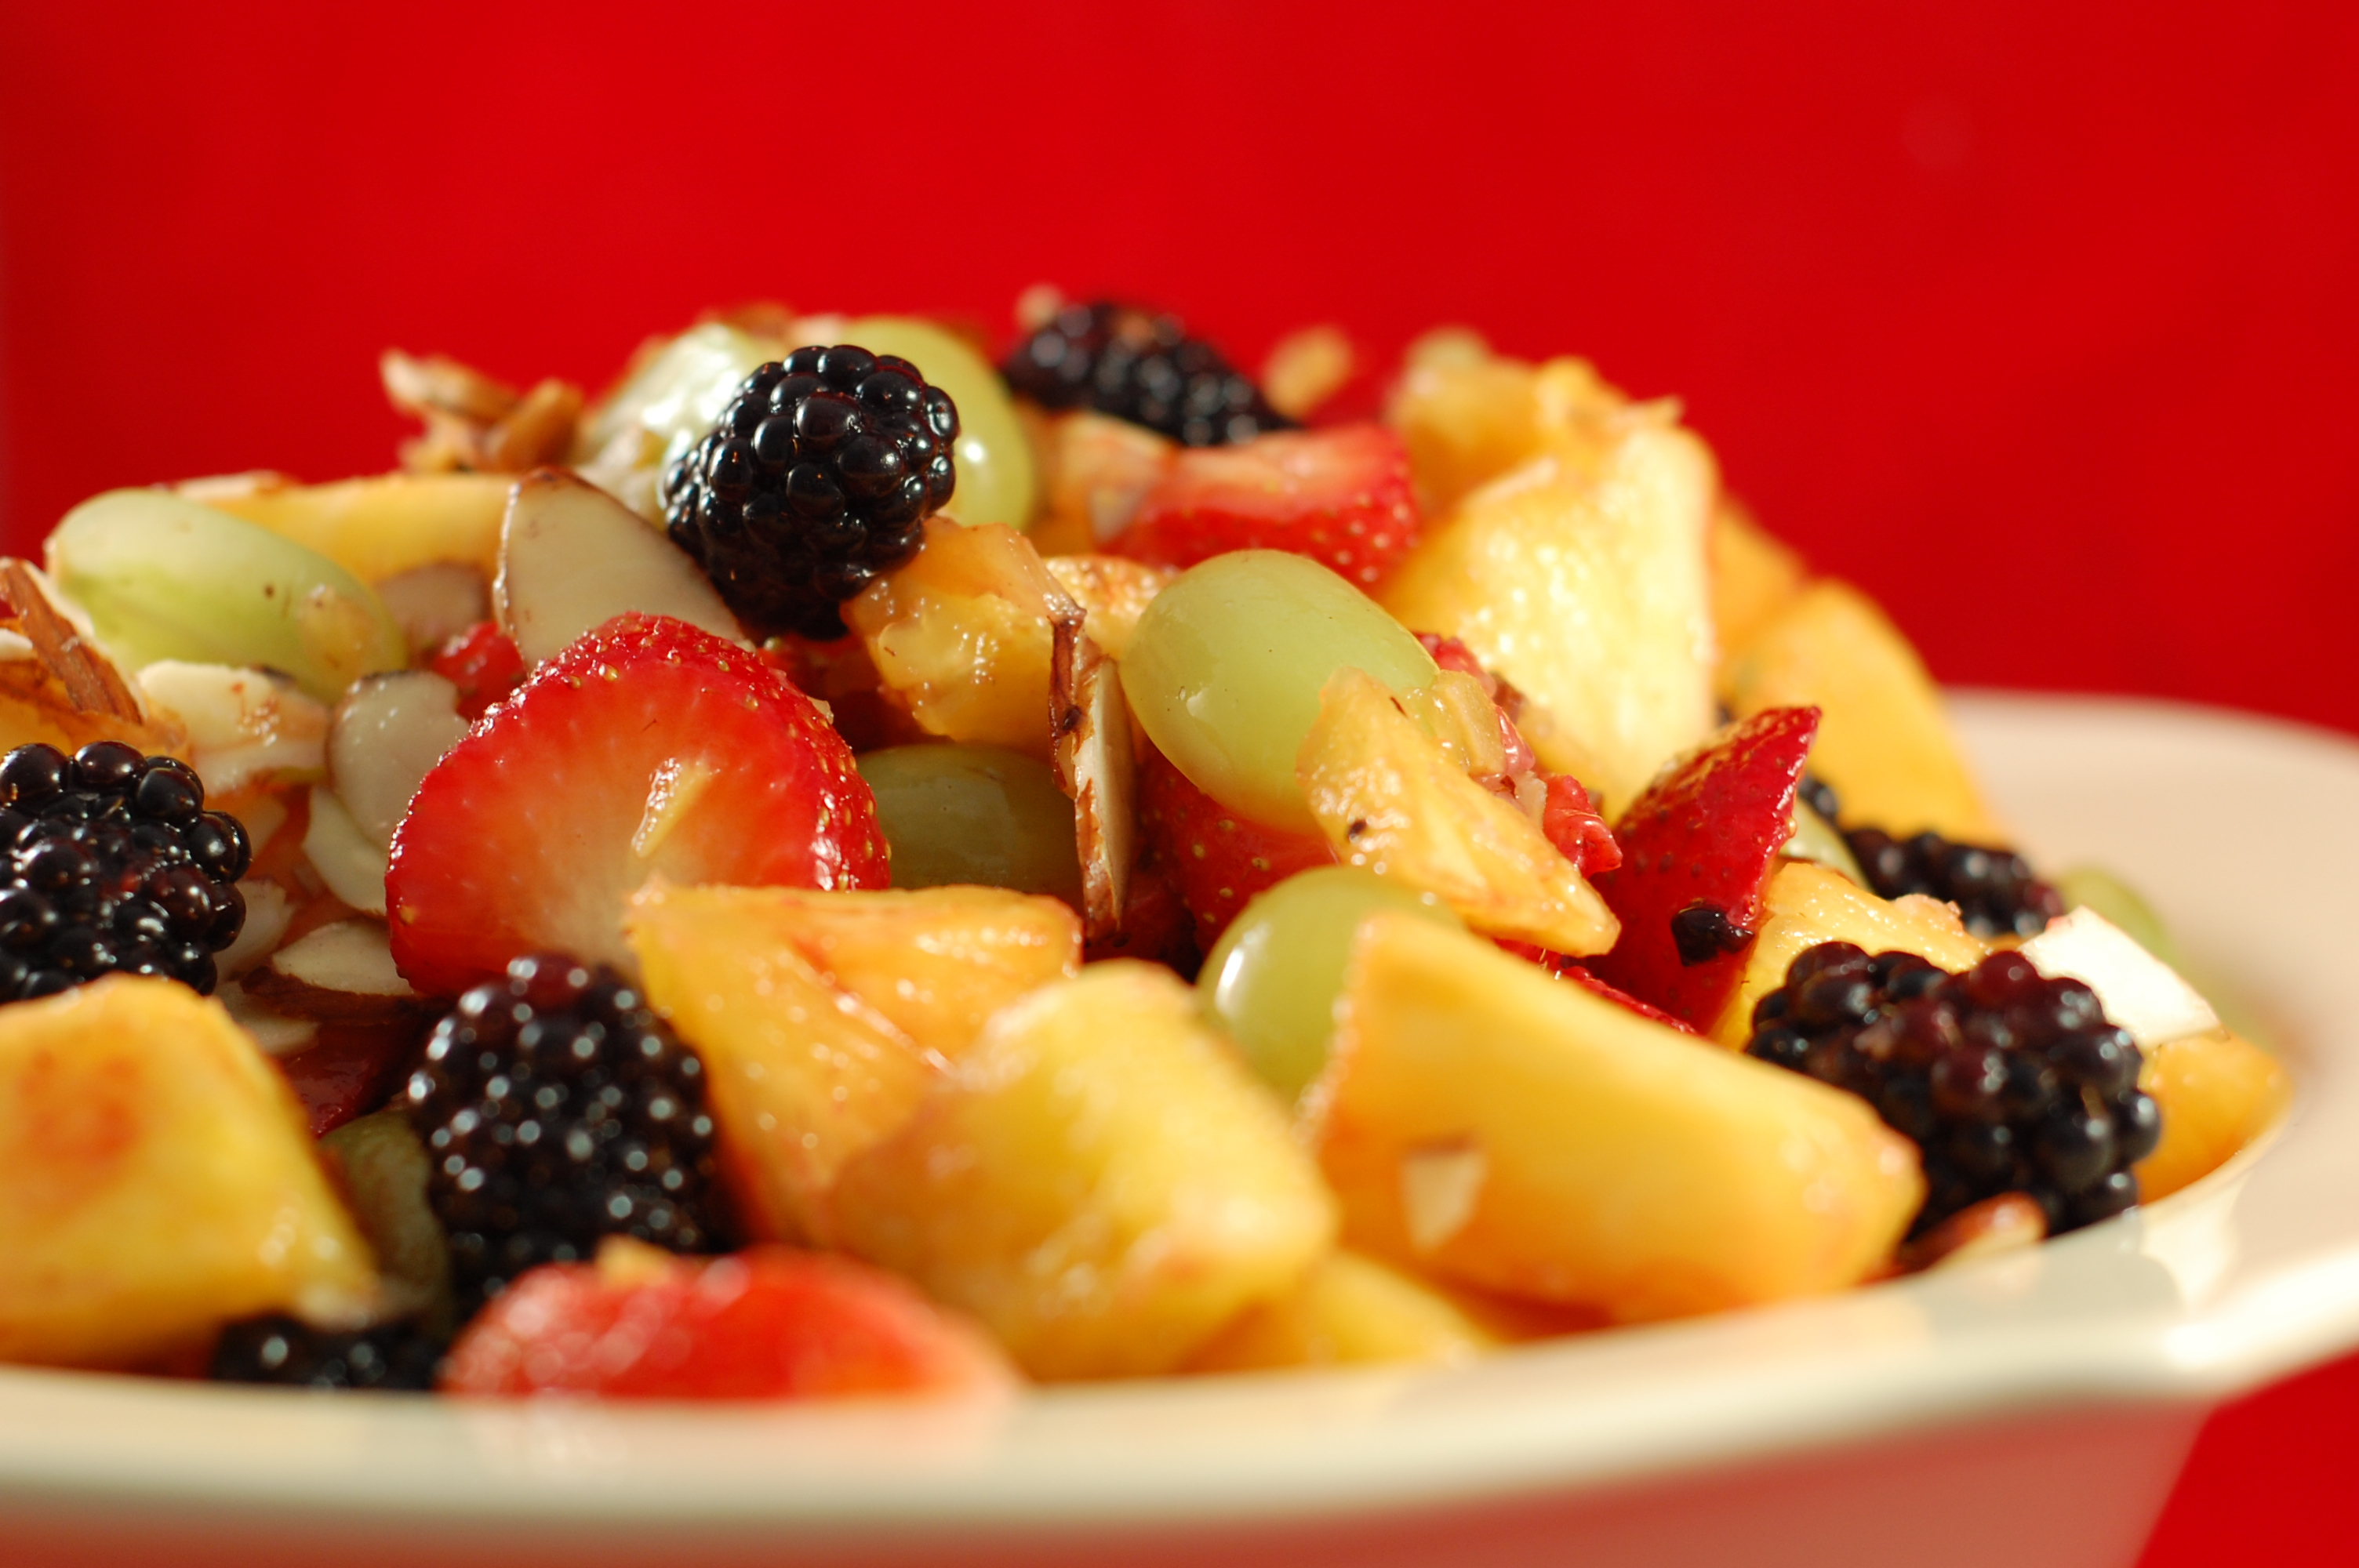 fruit salad from the side